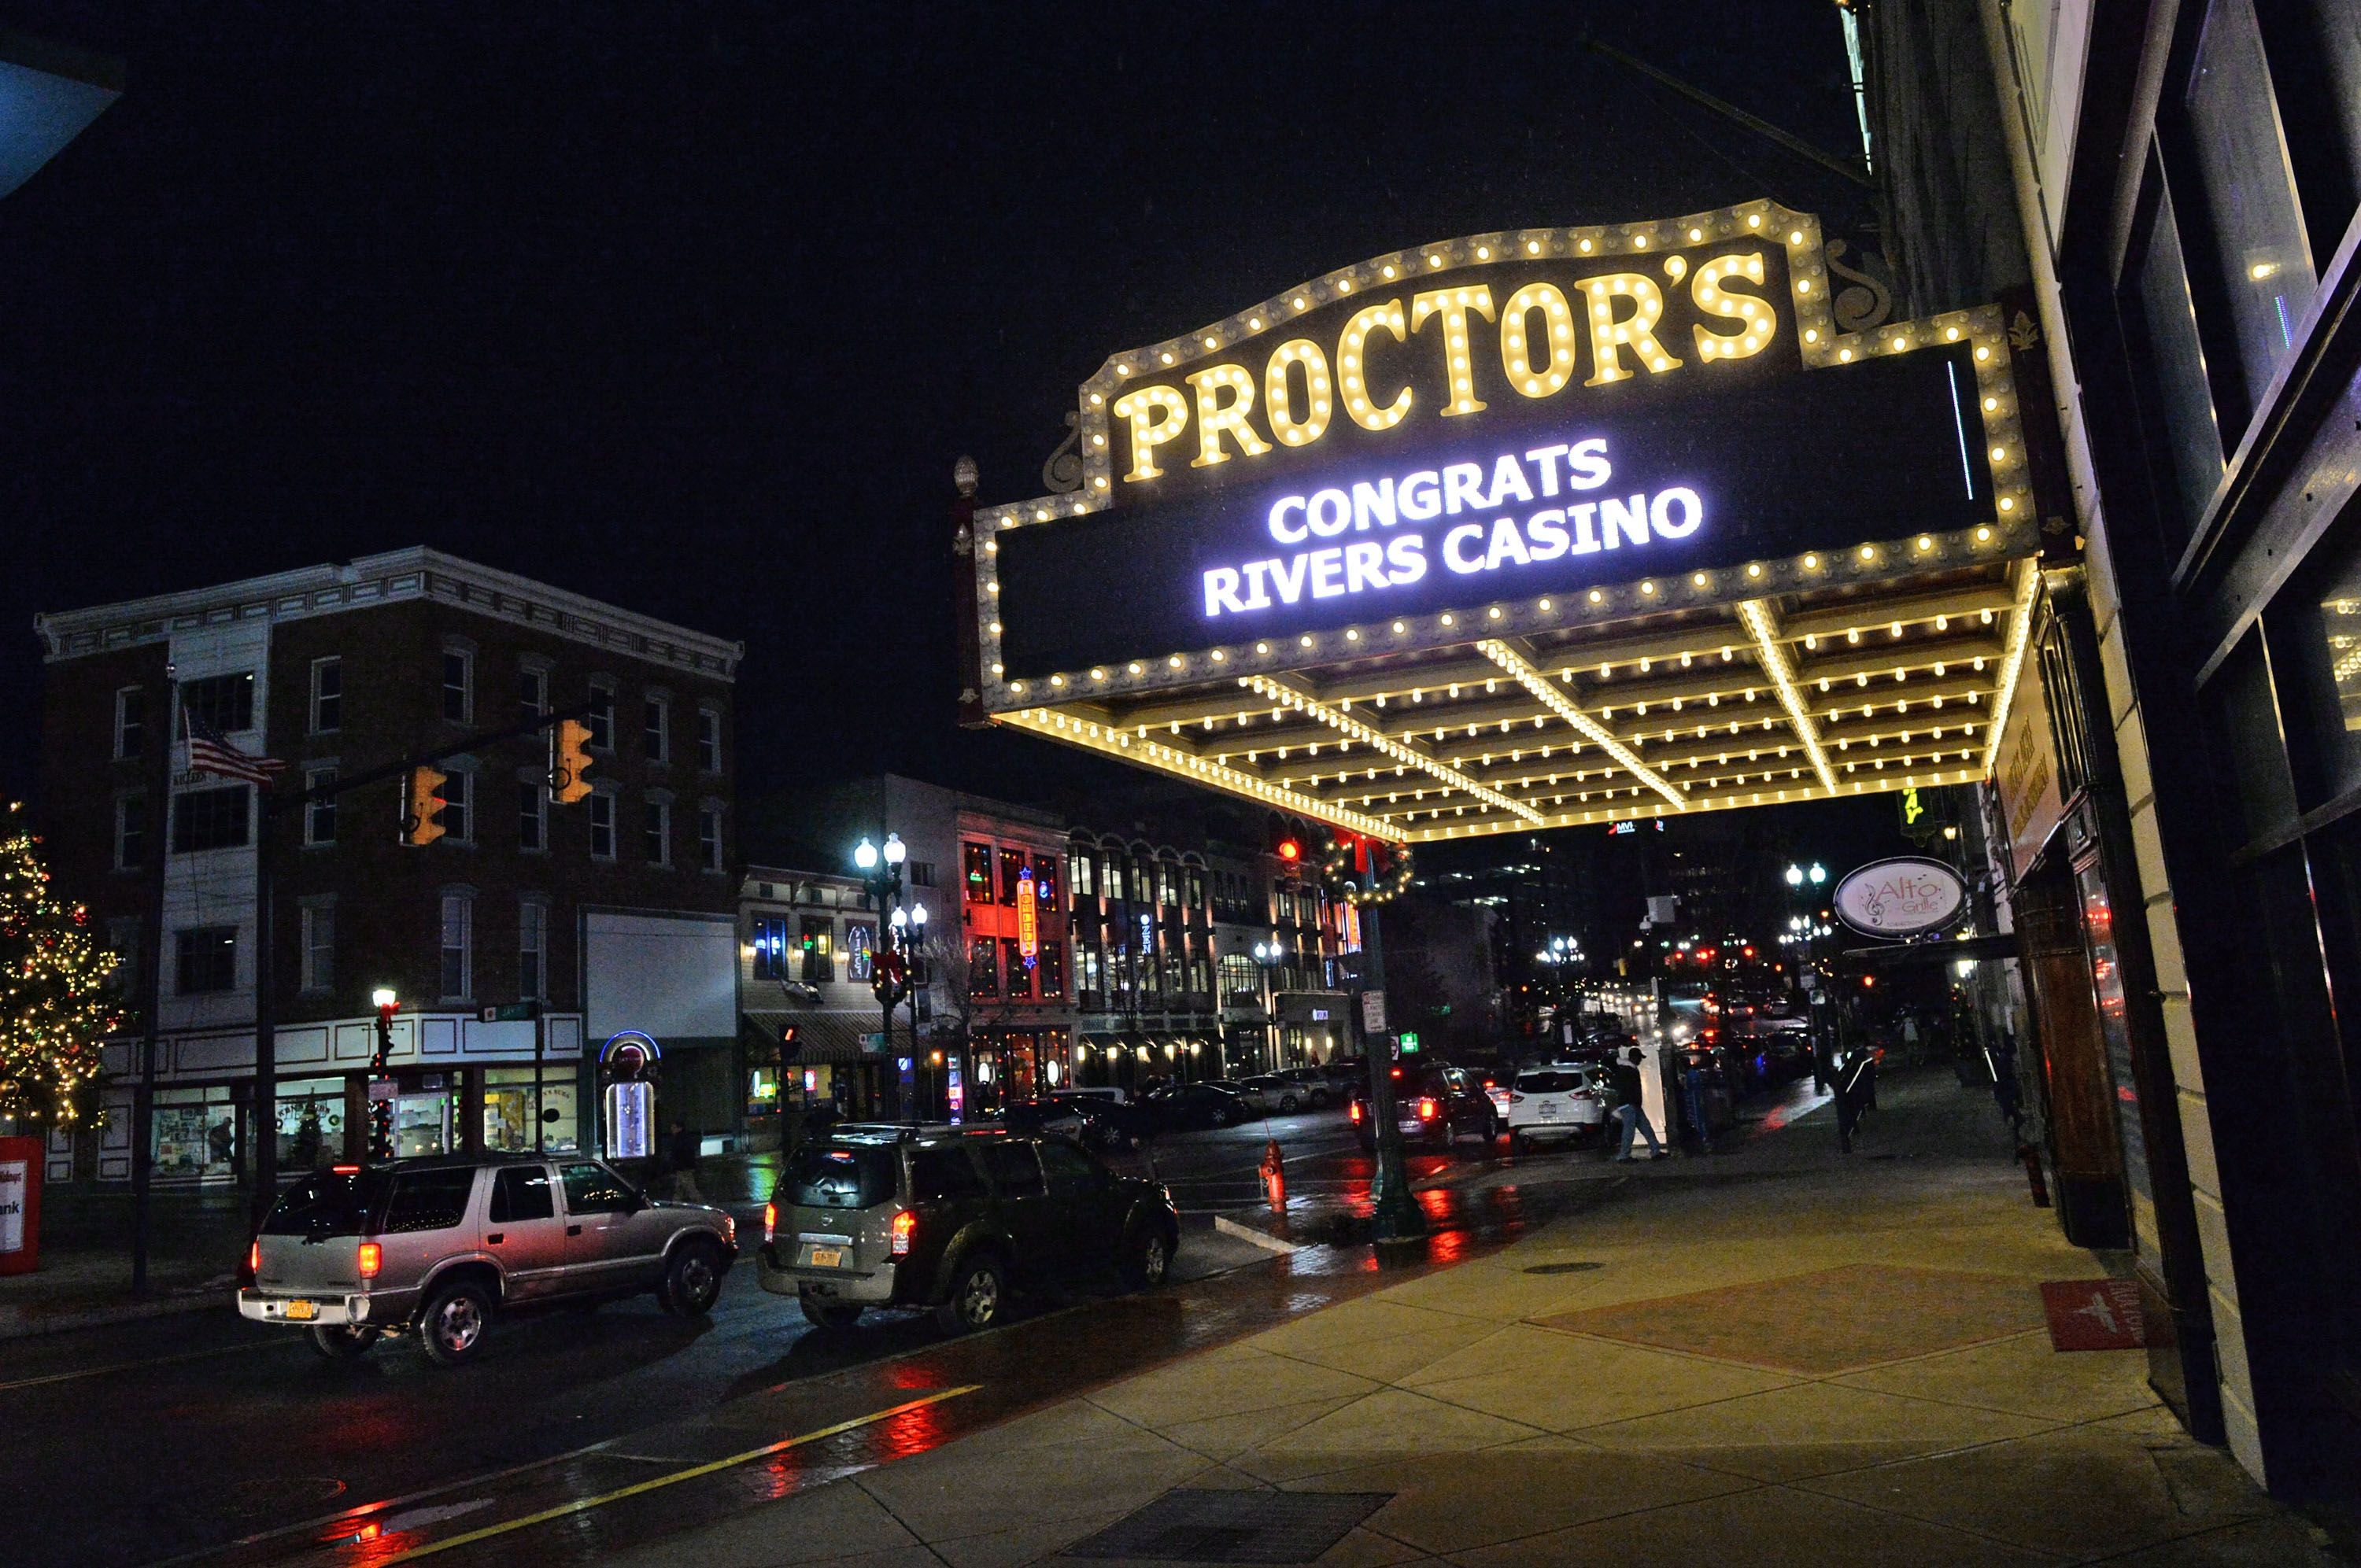 The Proctors Theater marquee displays a celebratory message after a New York State board announced earlier on Dec. 17, 2014, that the former Alco site in  Schenectady, N.Y., would be recommended for a casino